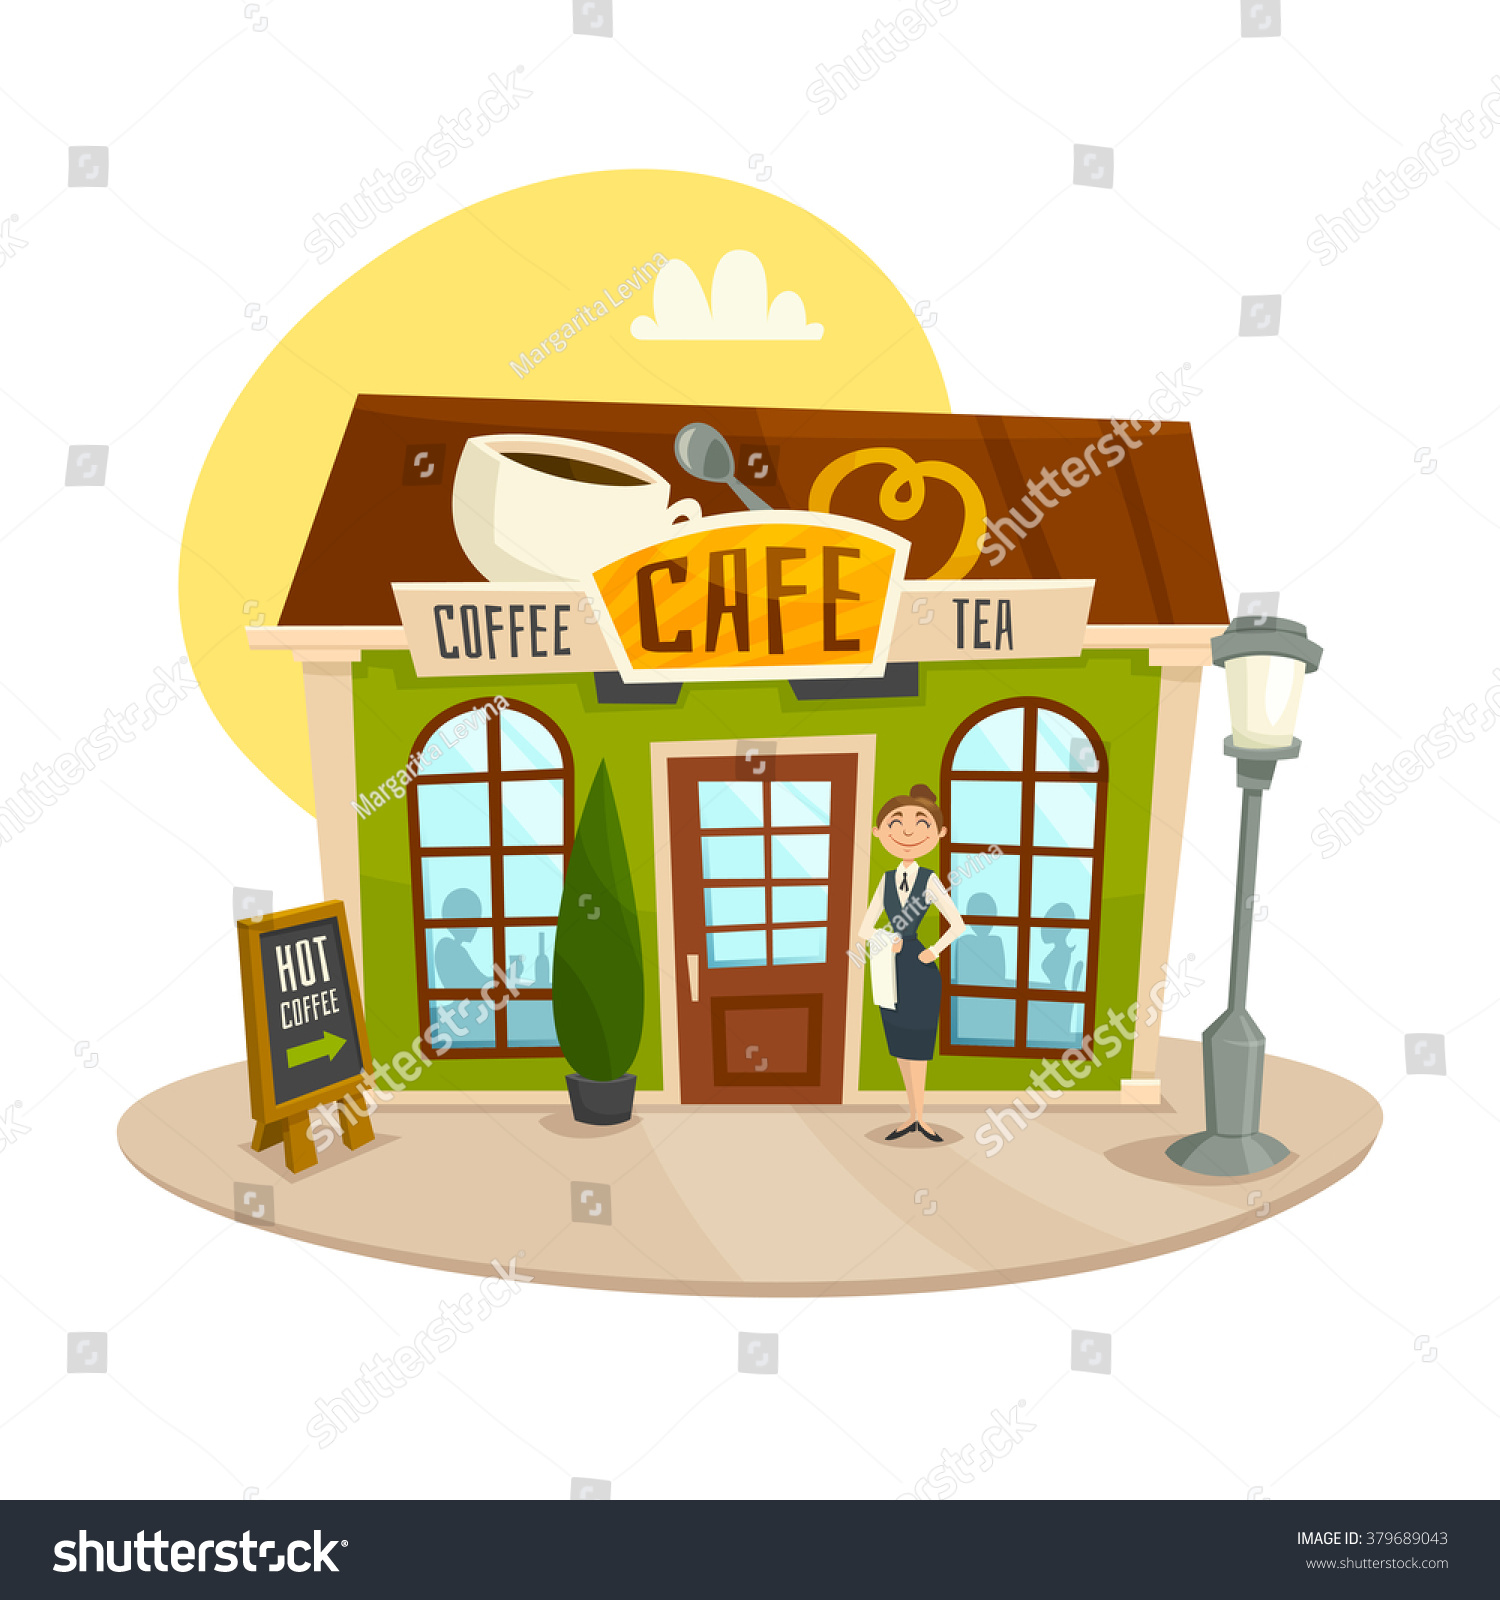 Facade restaurant business illustration perspective clip cafe graphic front vista viewpoint isolated